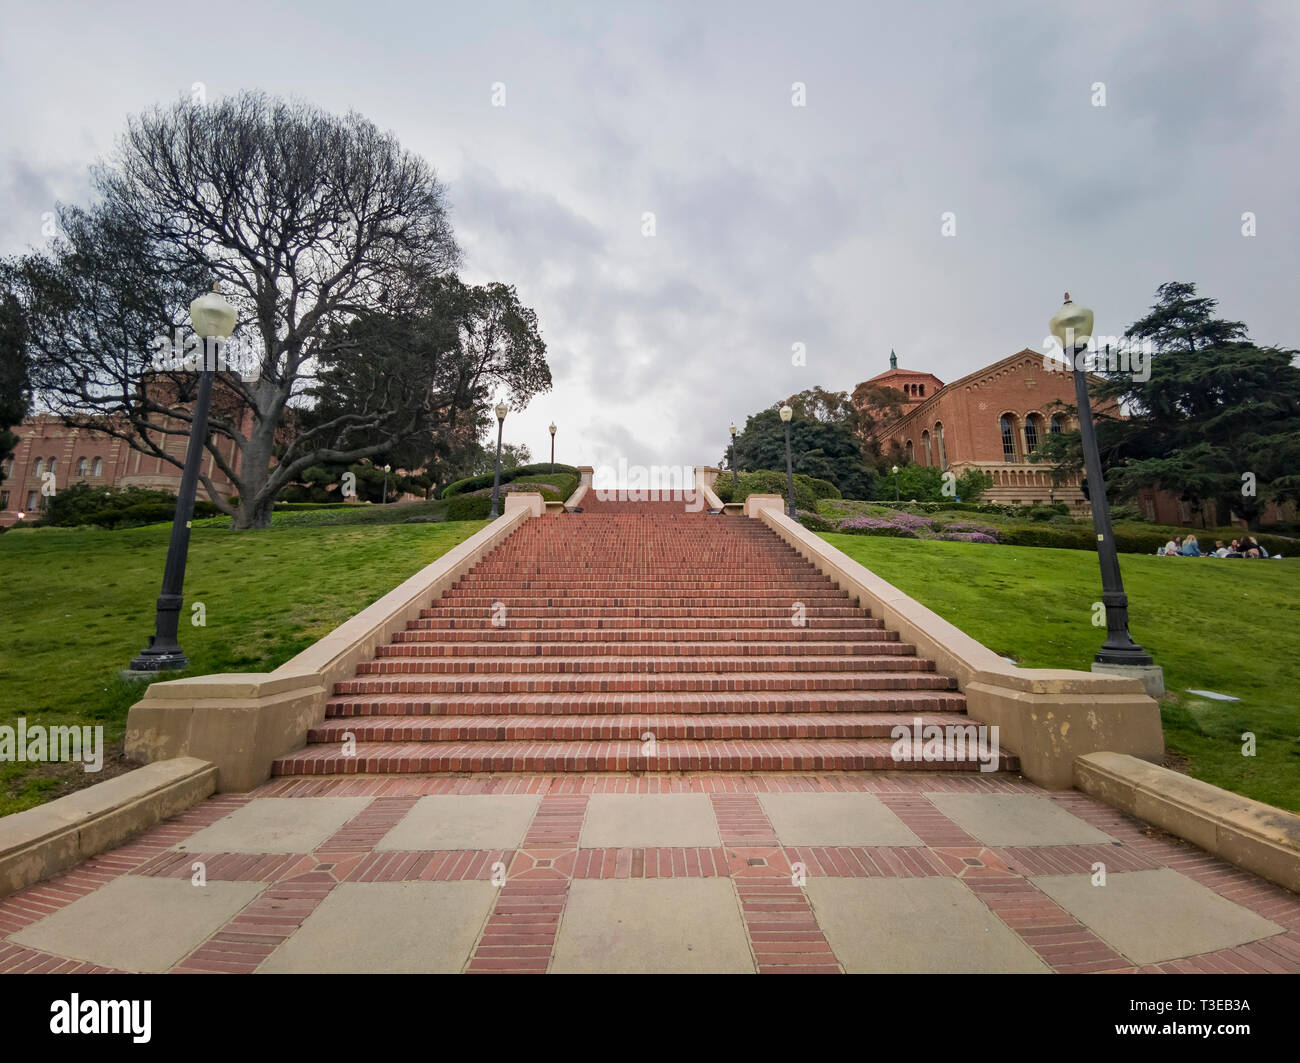 Los Angeles, APR 4: Long stair of UCLA on APR 4, 2019 at Los Angeles, California - Stock Image